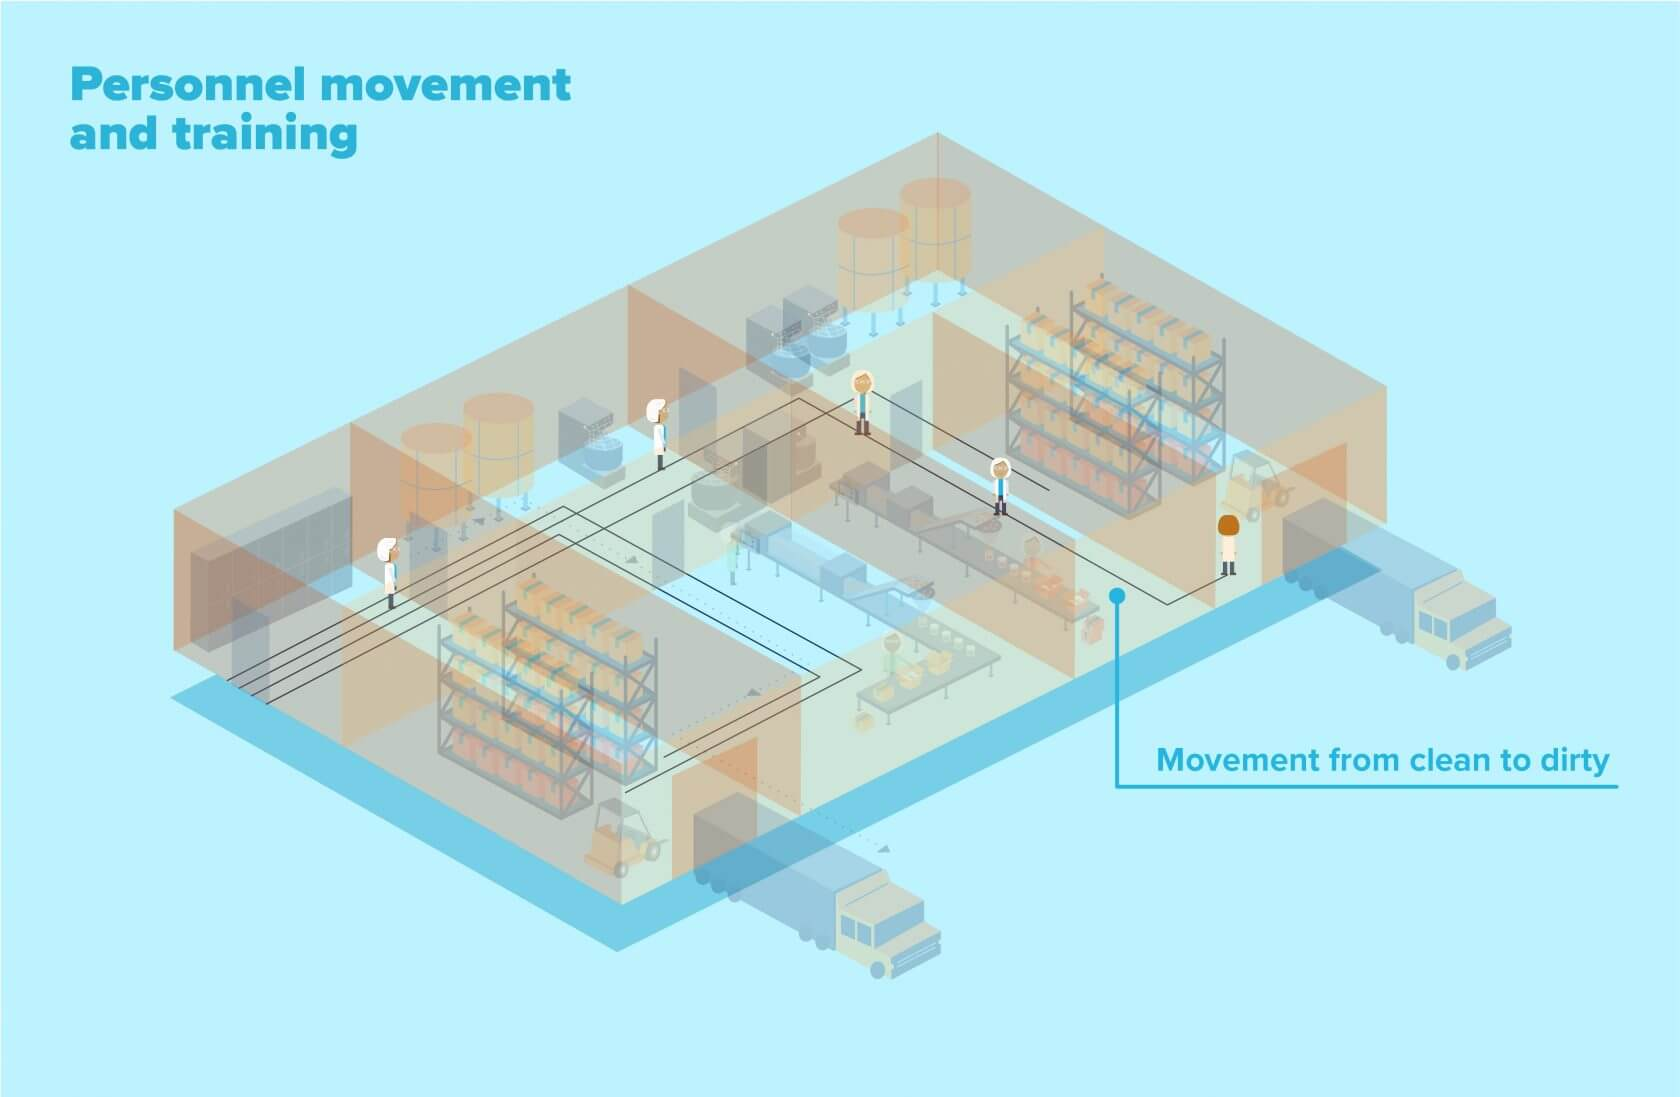 Training and personnel movement within a food manufacturing facility